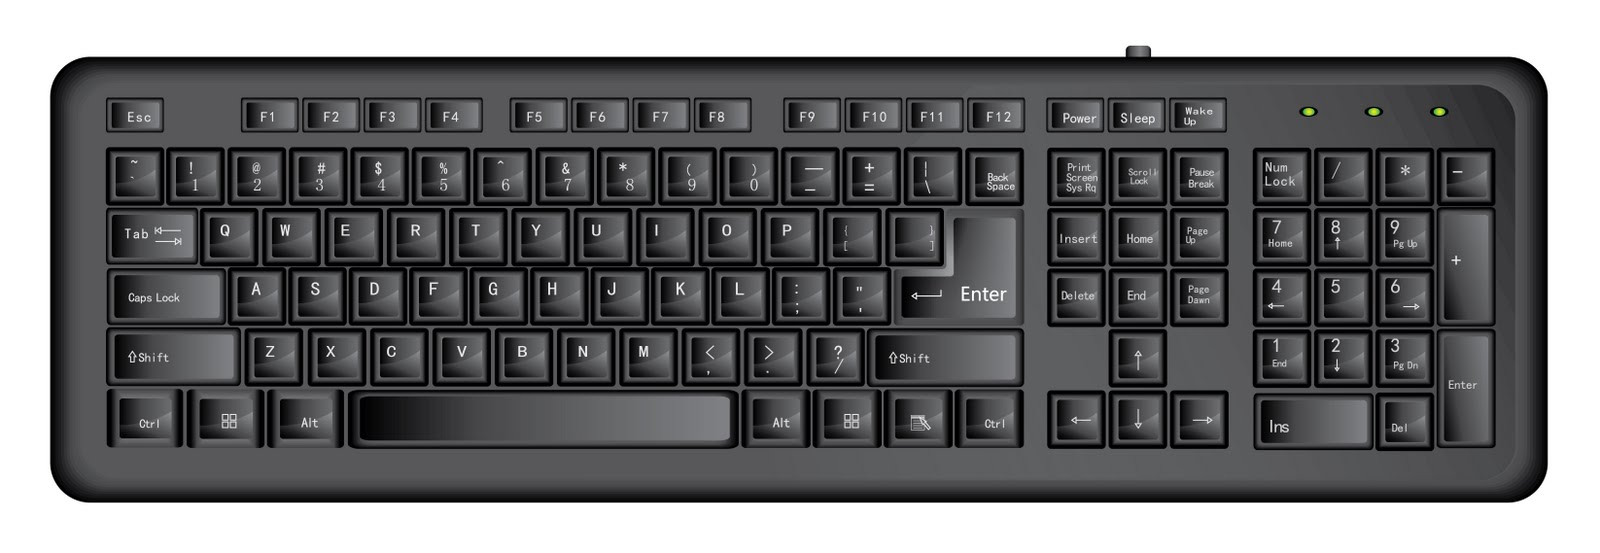 Free computer keyboard clipart